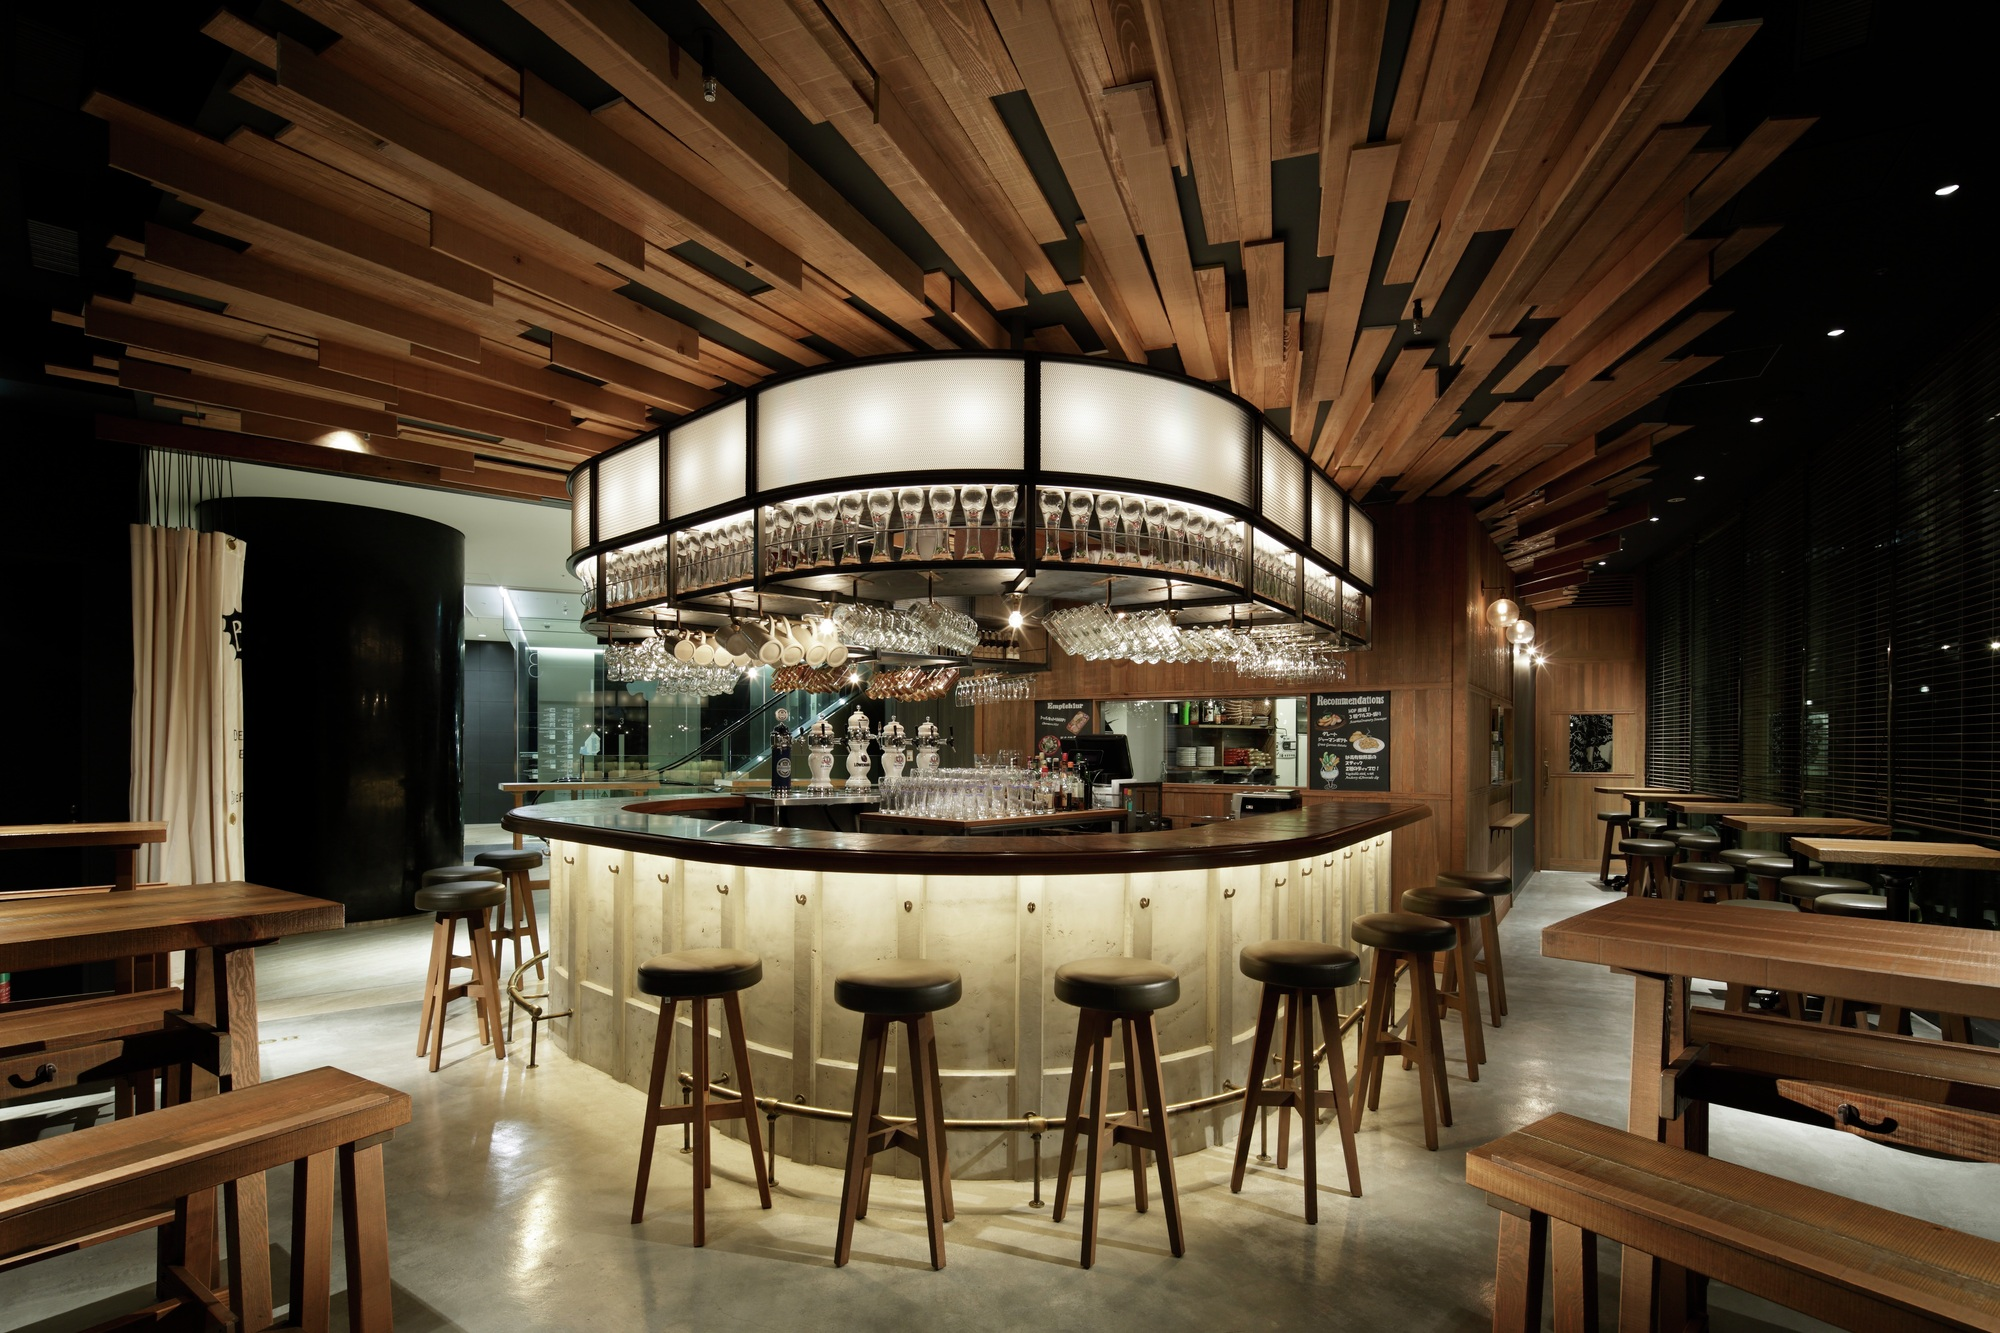 2015 Restaurant & Bar Design Award Winners Announced | ArchDaily